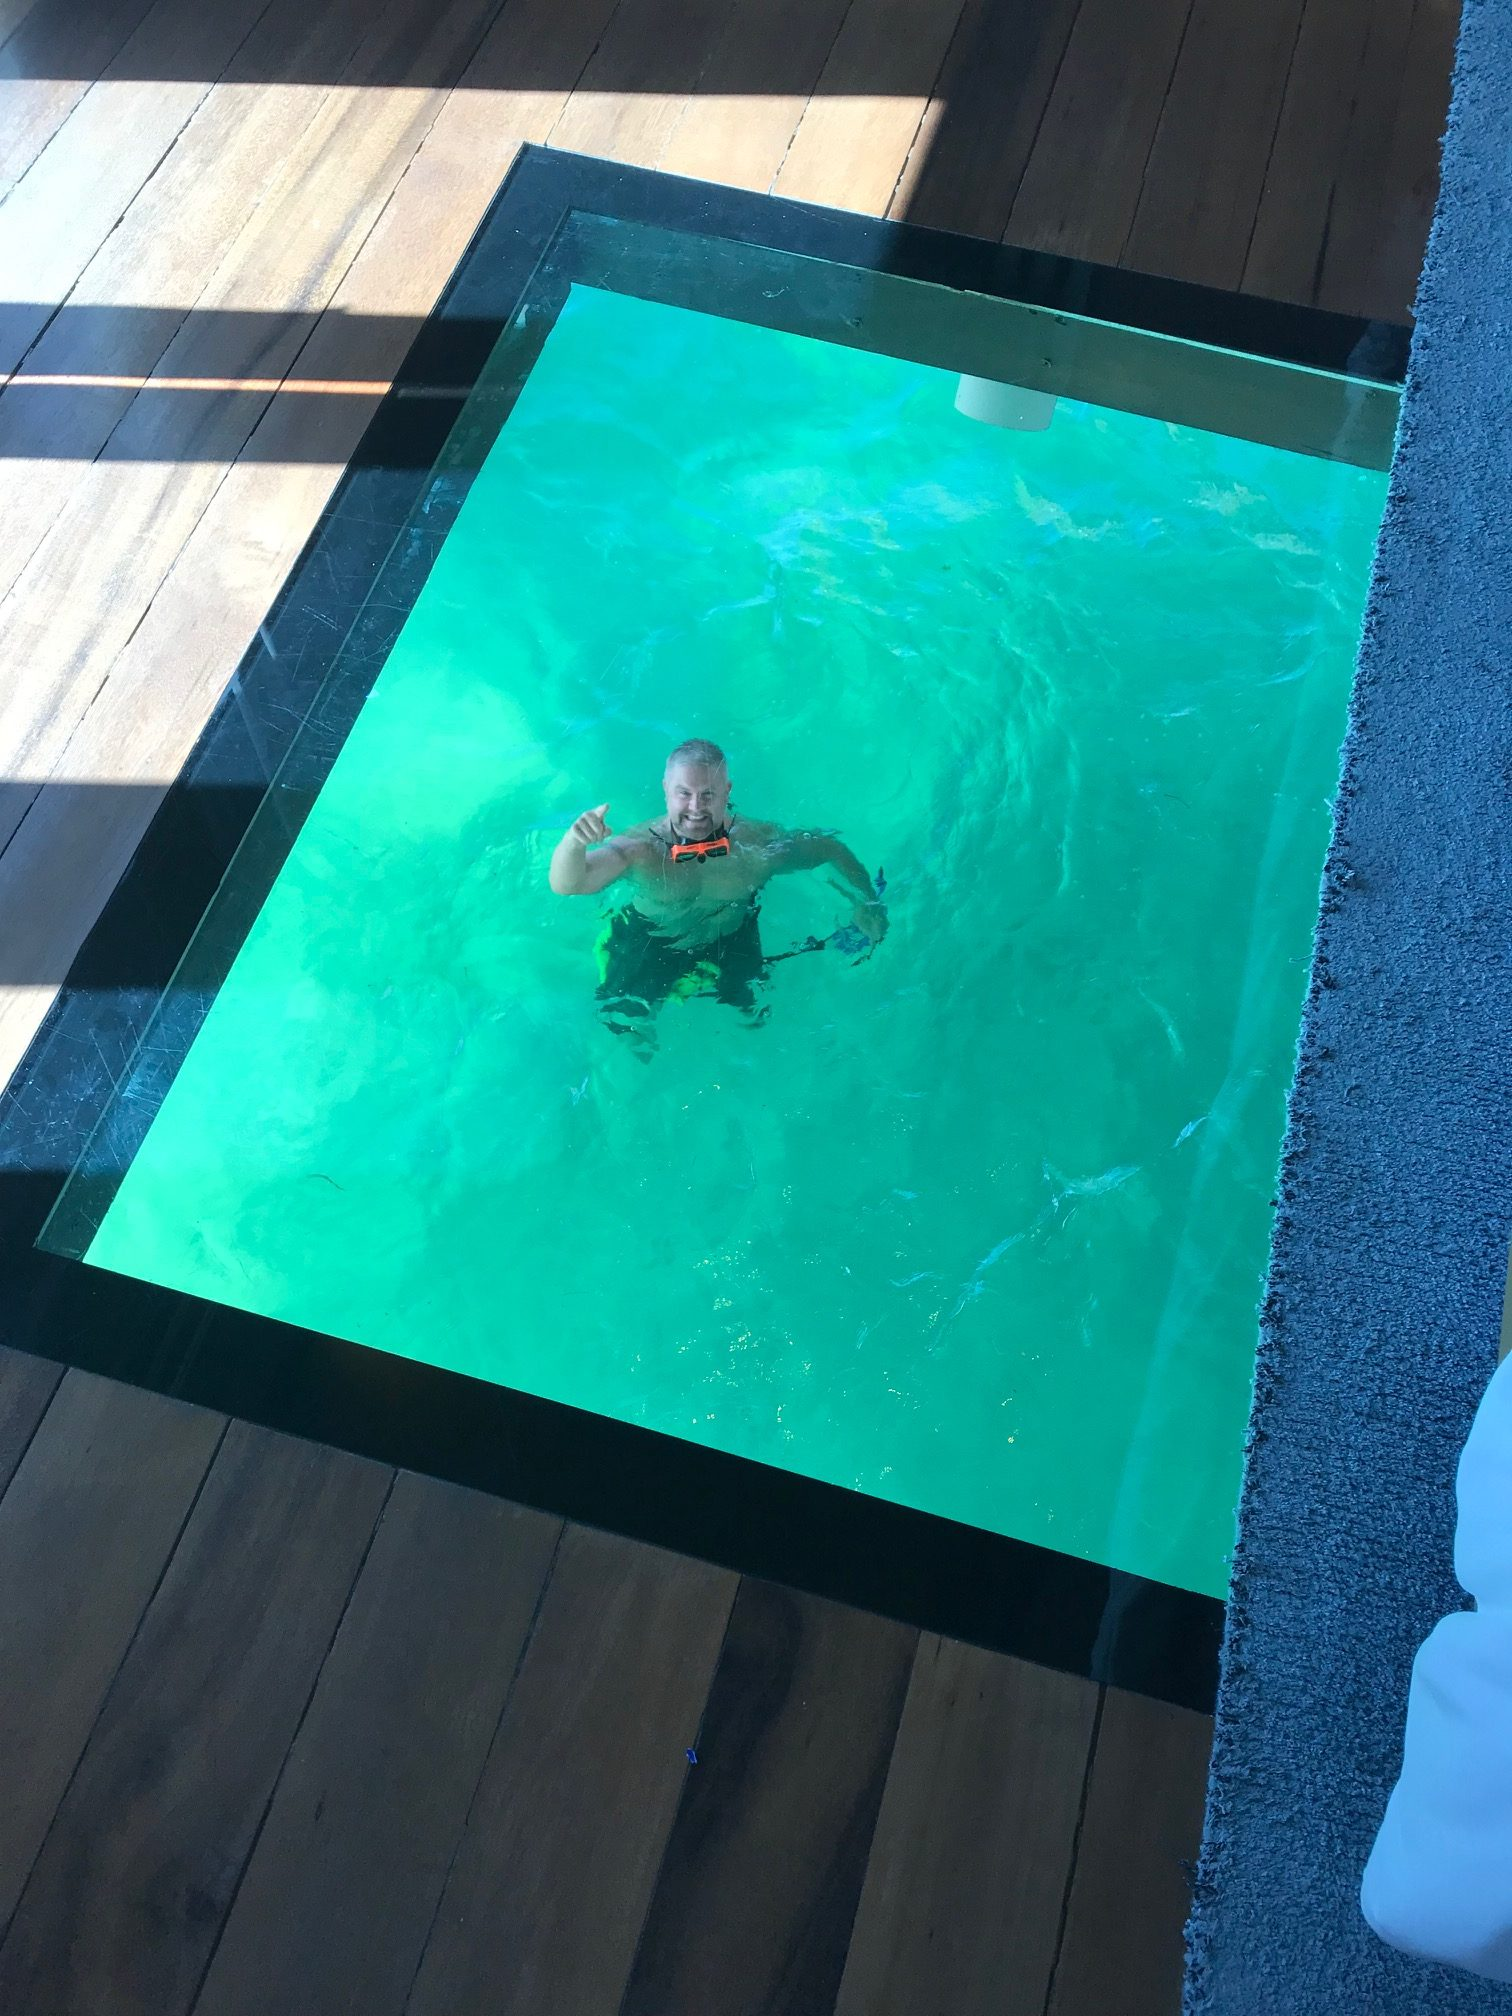 all-inclusive overwater bungalow Glass floors